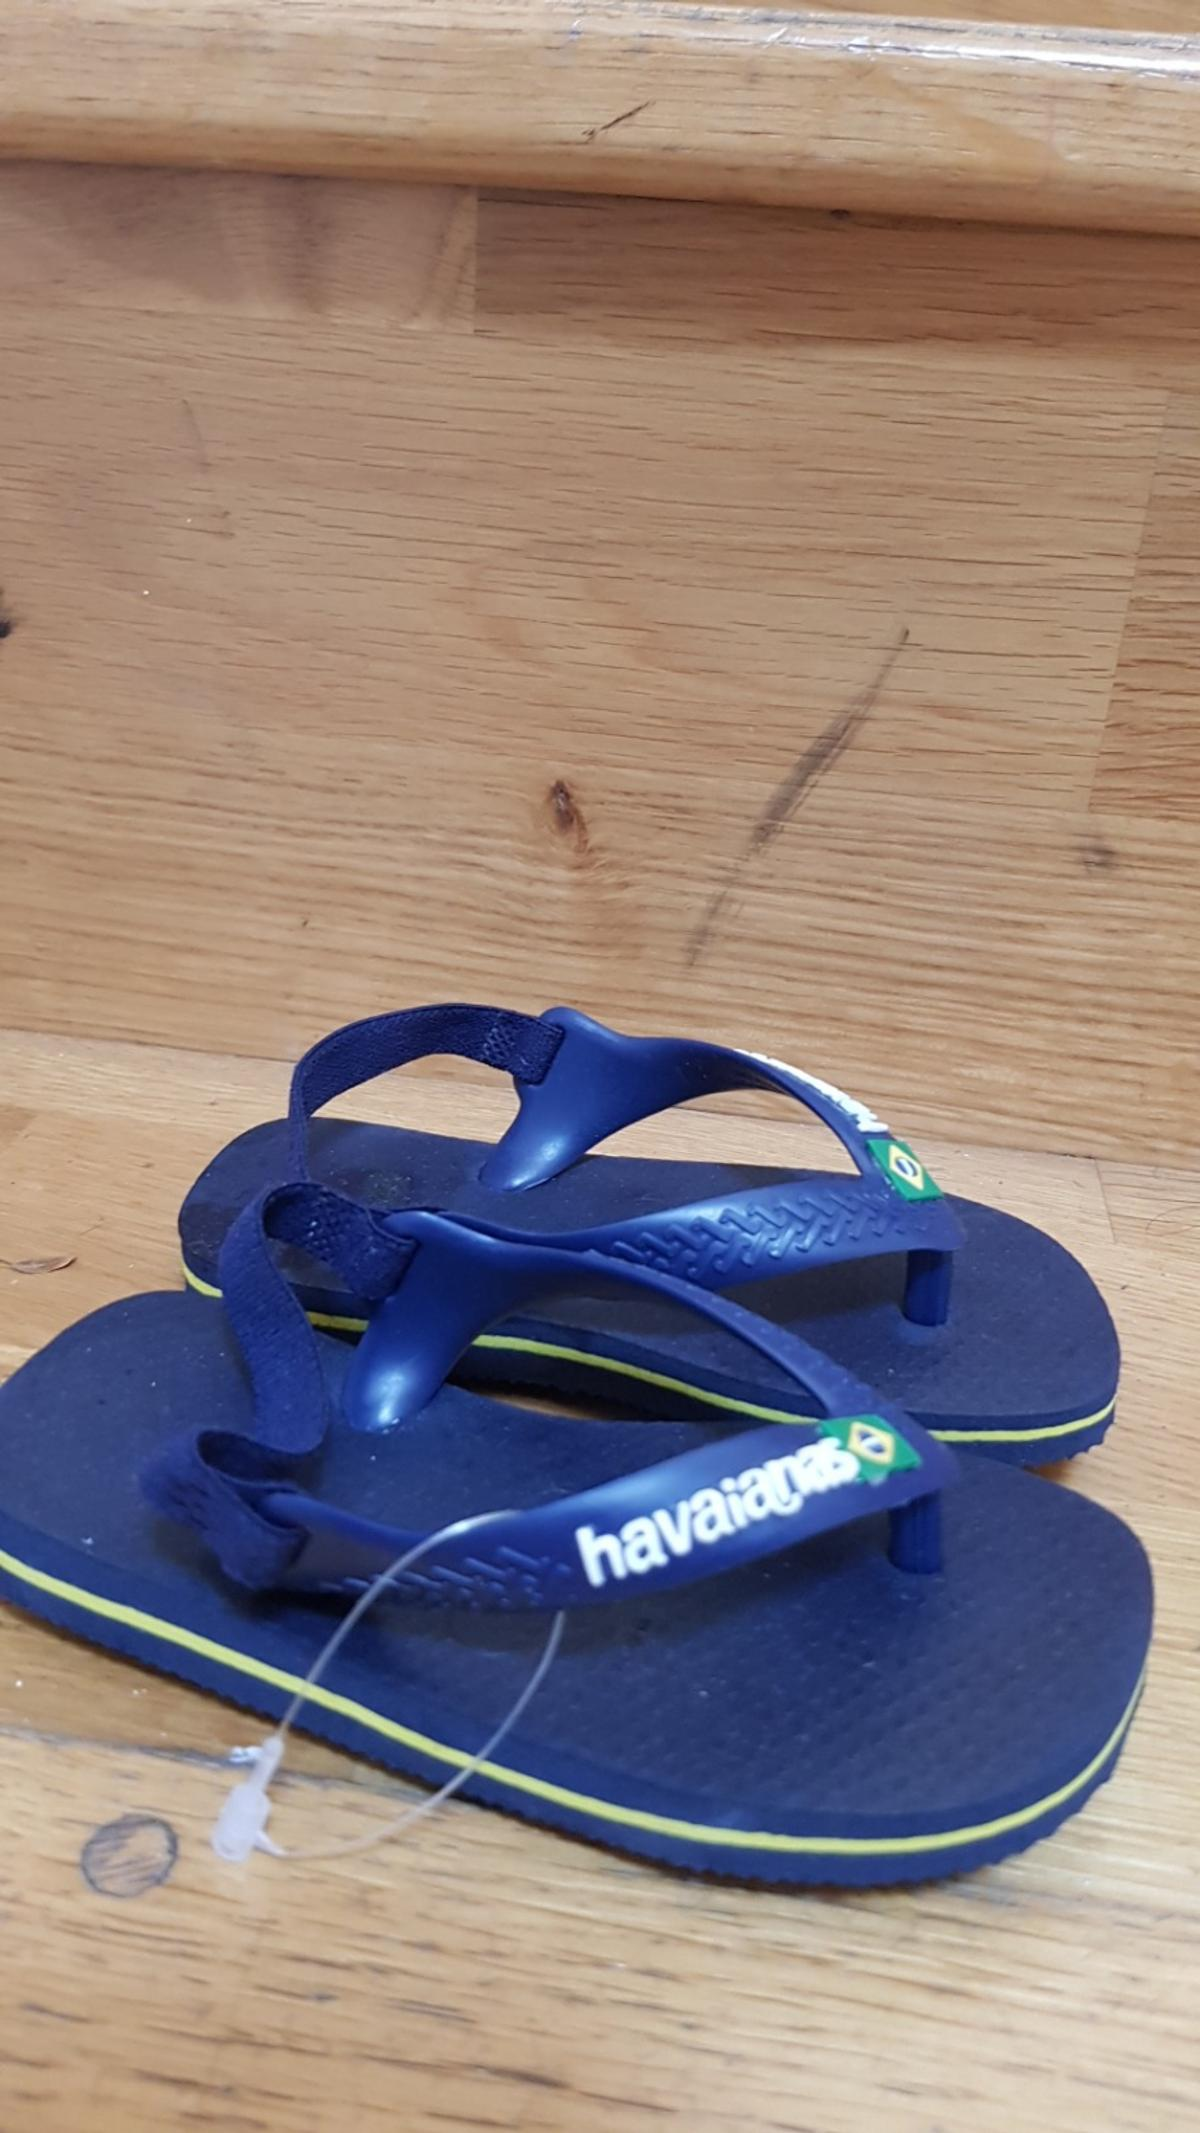 Perfect condition Hawaianas boys sandals size 22.UK size 5? Never worn. Collection from Crouch End or I can post